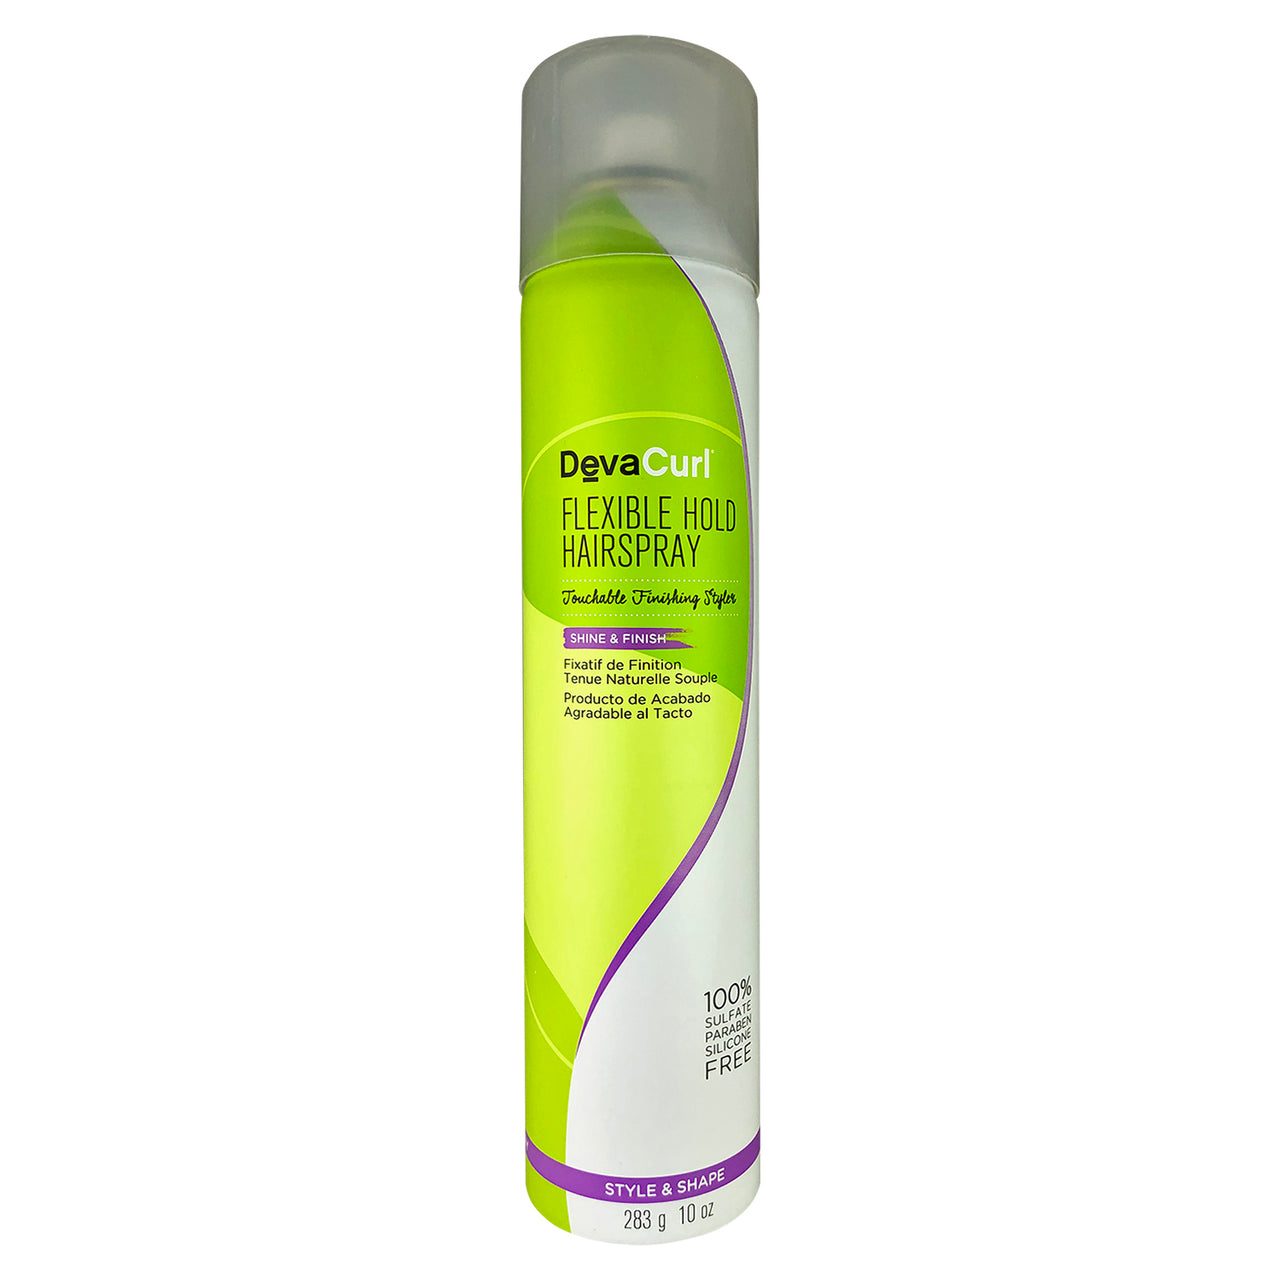 DevaCurl Flexible Hold Hairspray Touchable Finishing Styler for Shine & Finish 10 oz 100% Sulfate Paraben Silicone Free